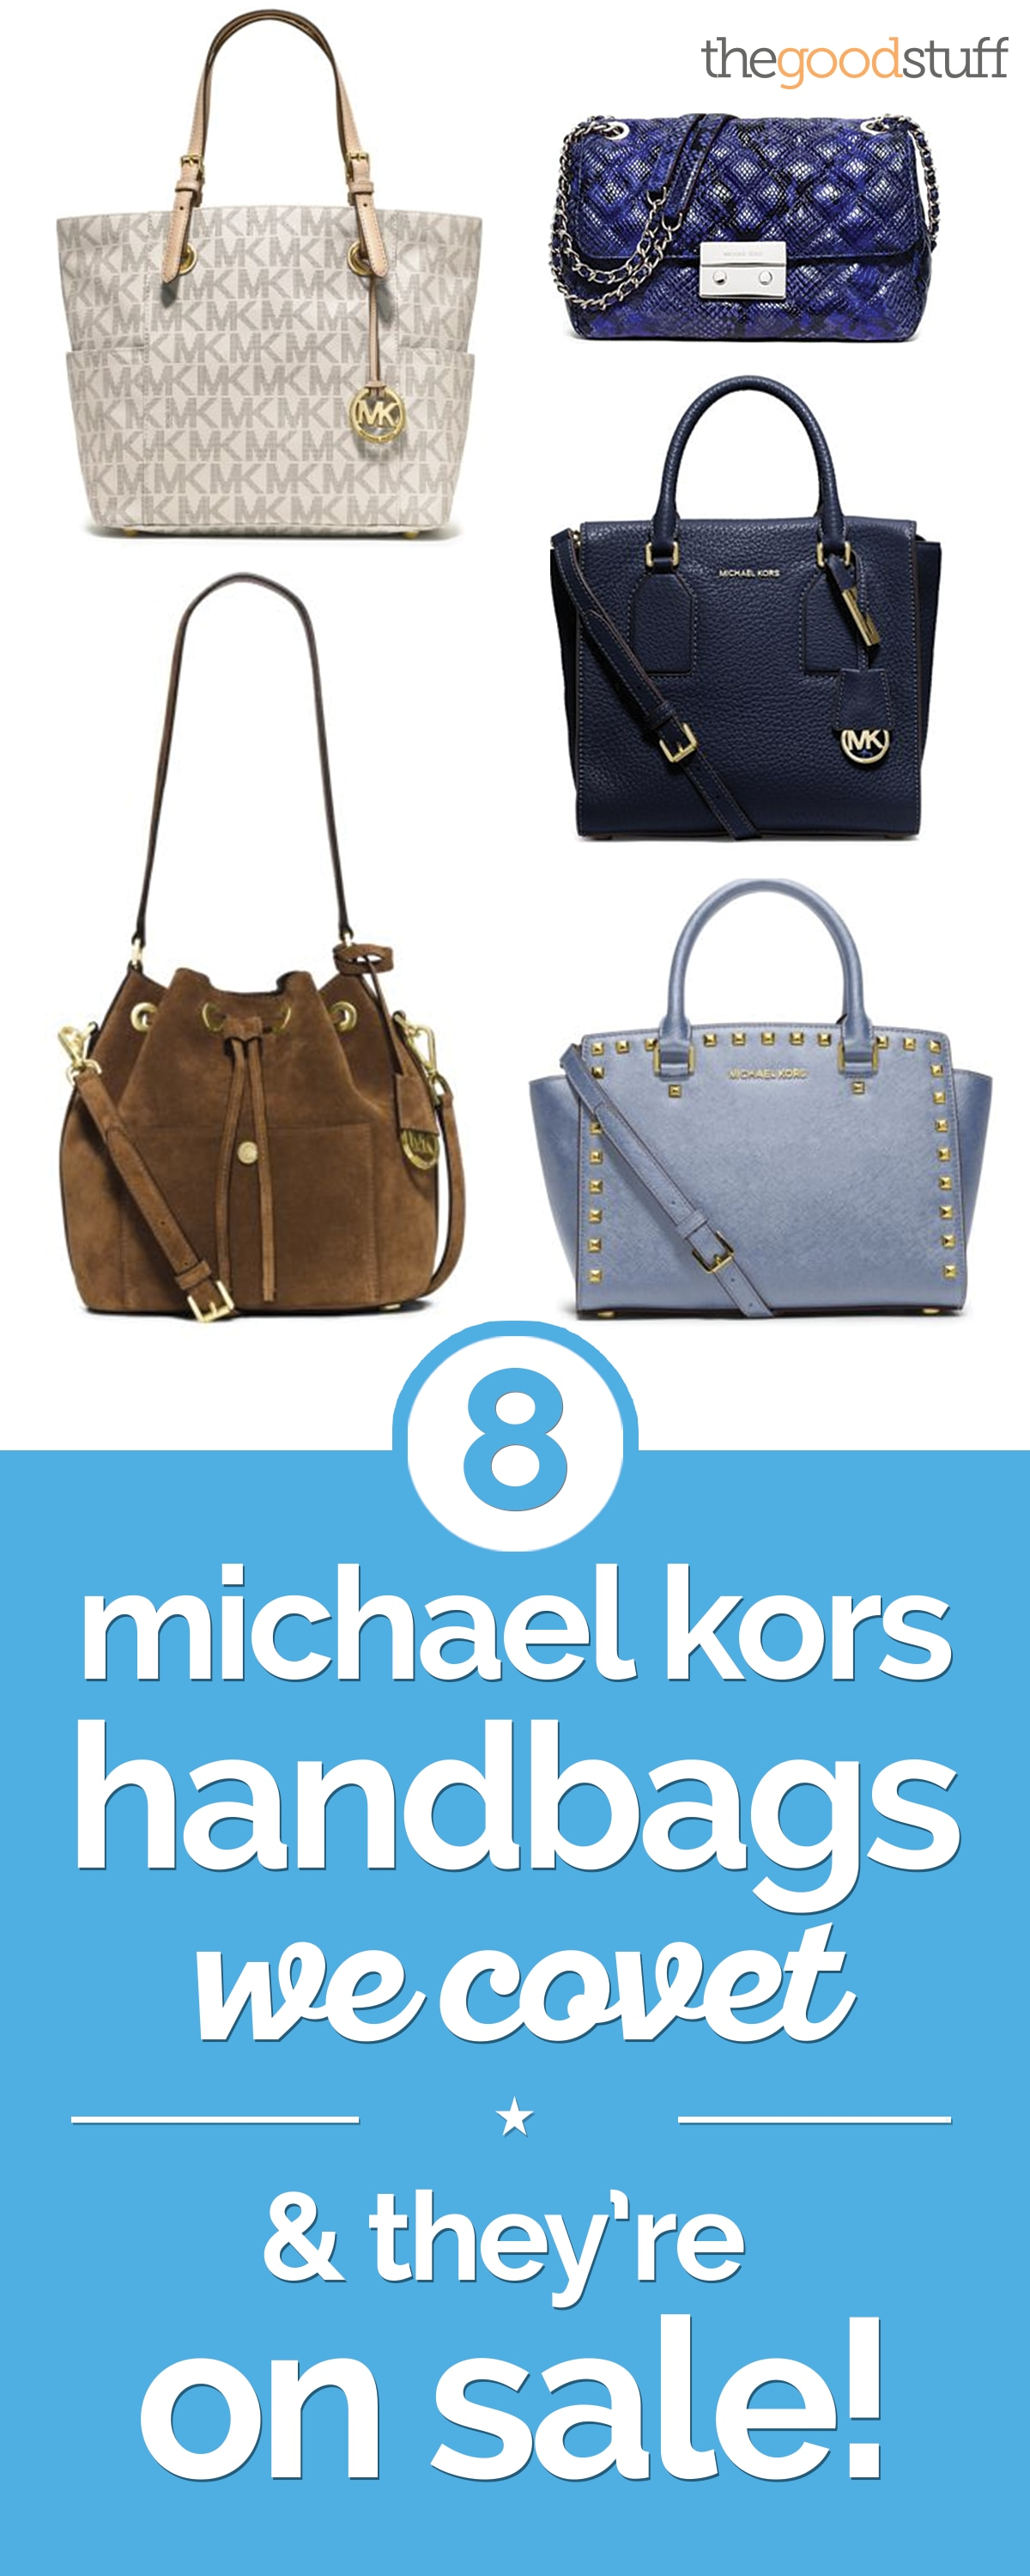 316532ec3b936f 8 Michael Kors Handbags We Covet — & They're On Sale! | thegoodstuff